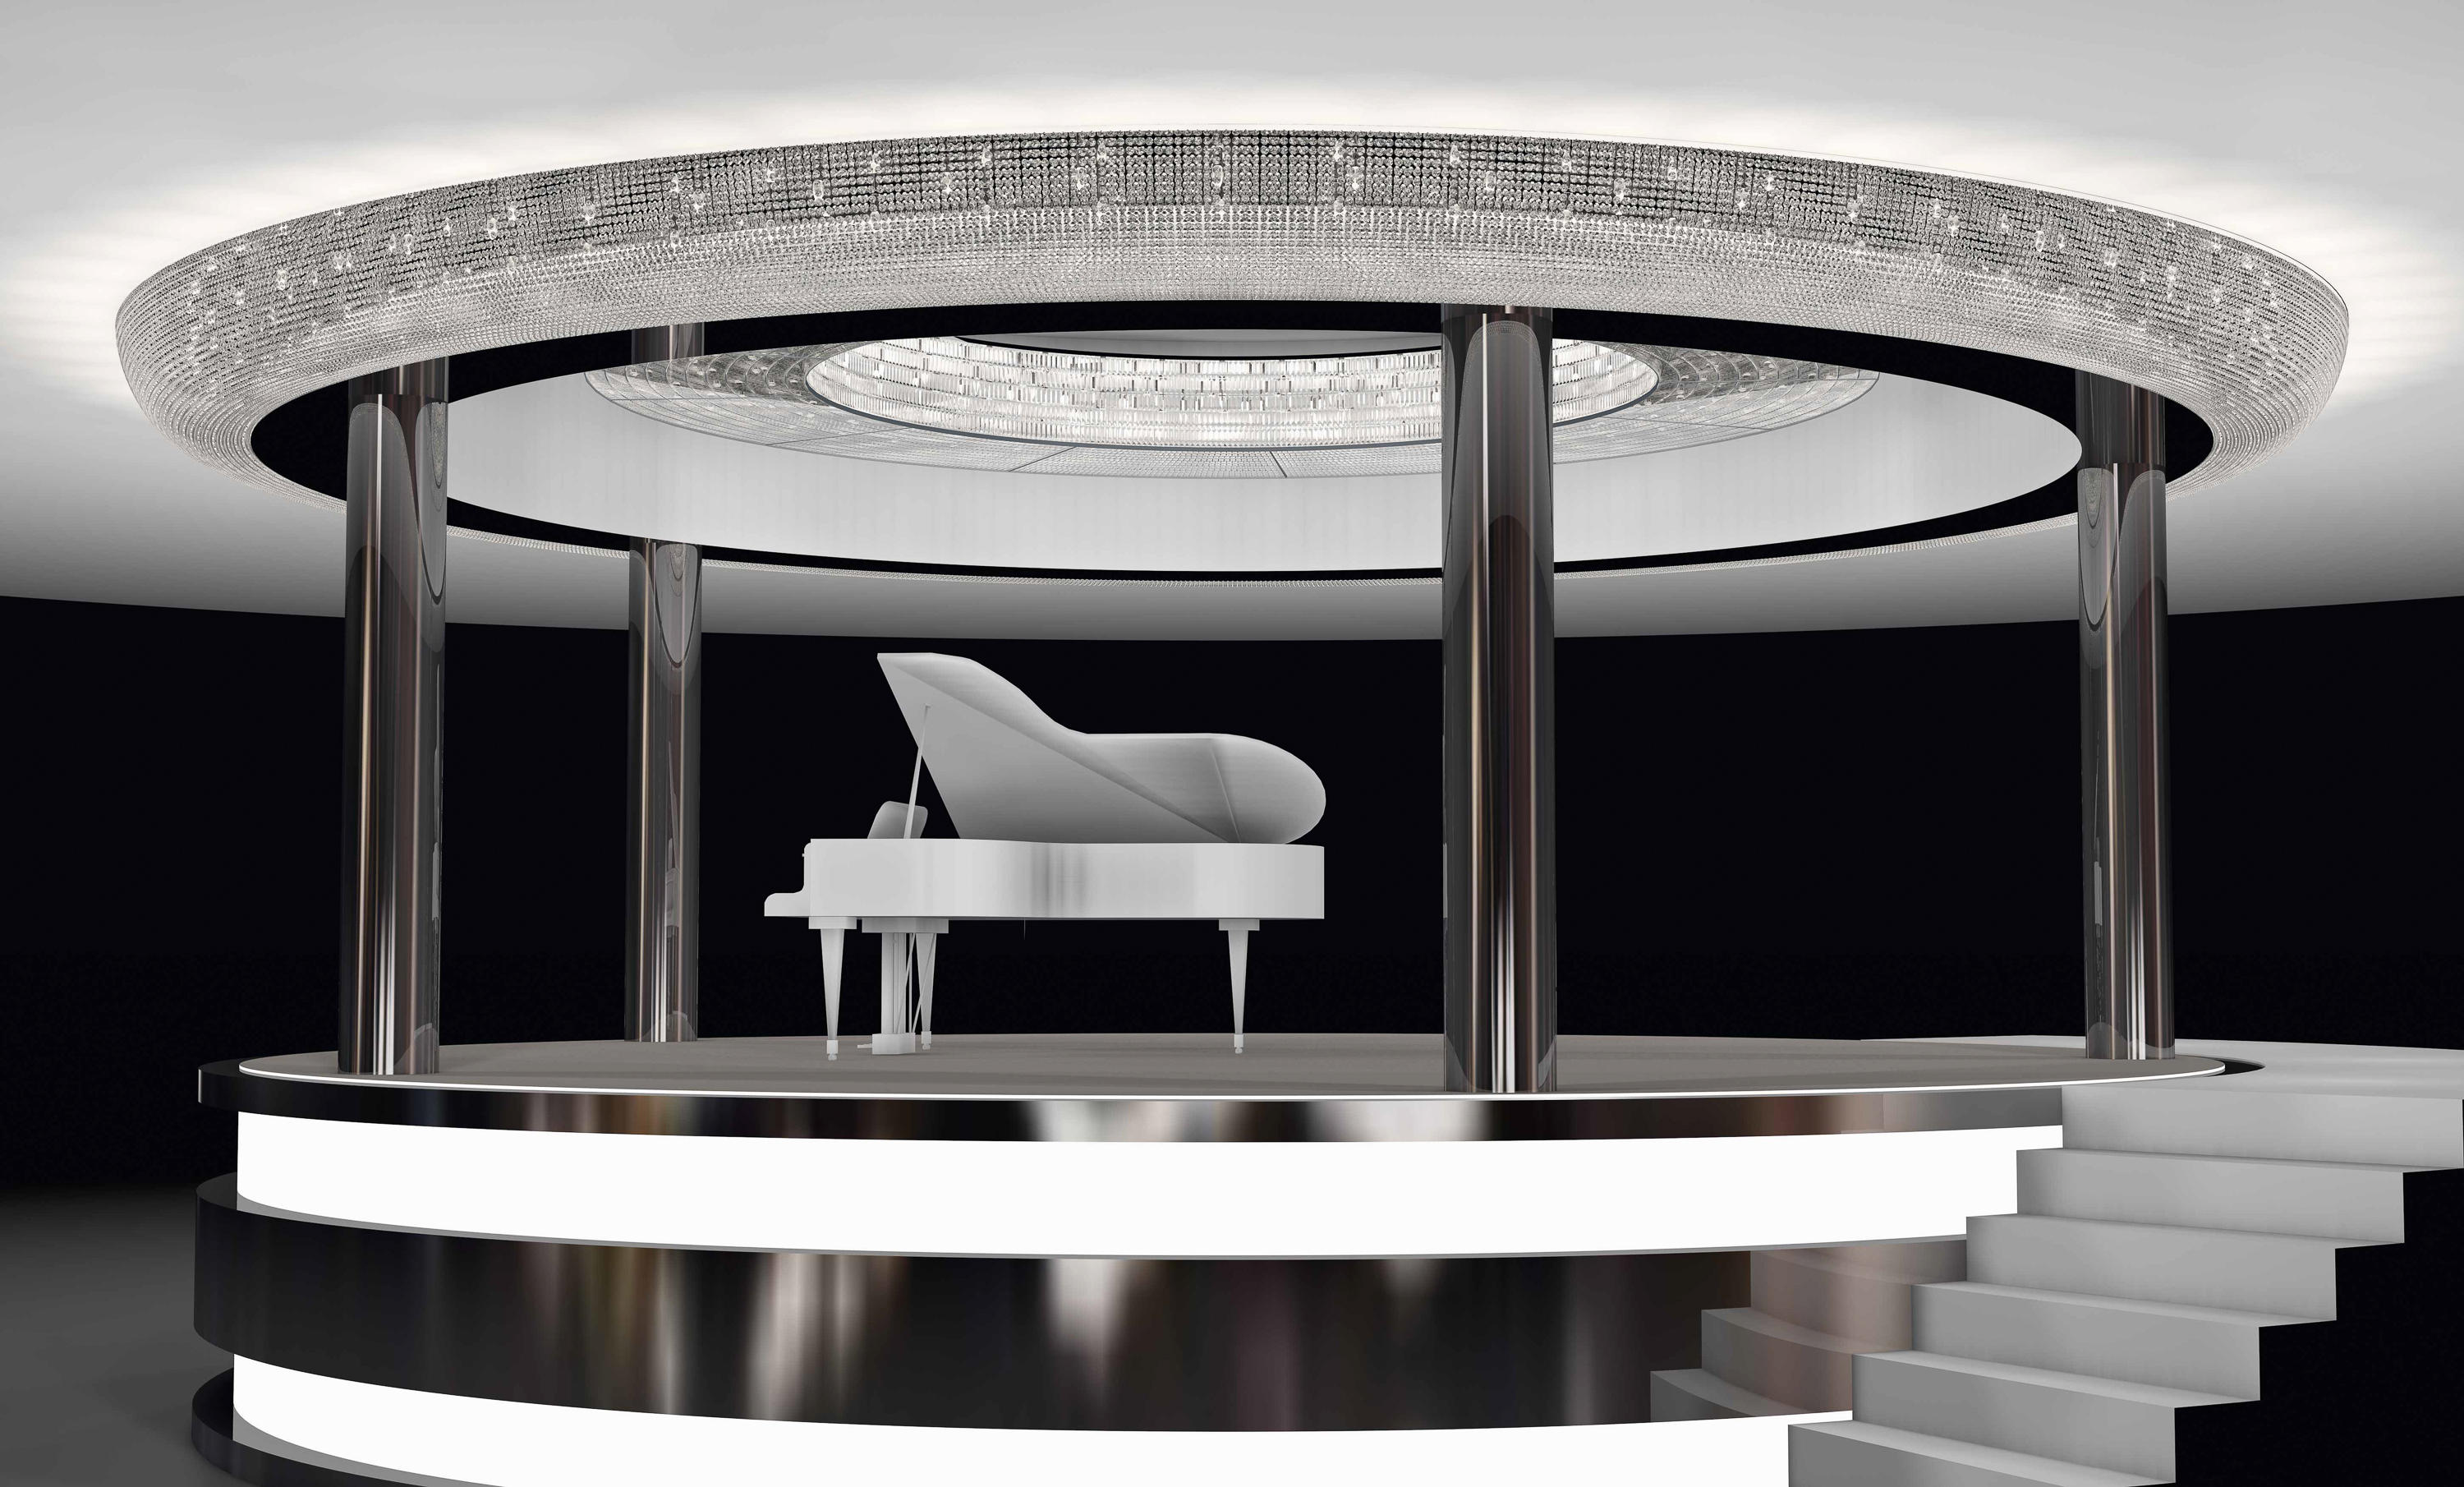 Bespoke chandelier piano bar chandeliers from windfall architonic bespoke chandelier piano bar by windfall chandeliers arubaitofo Choice Image